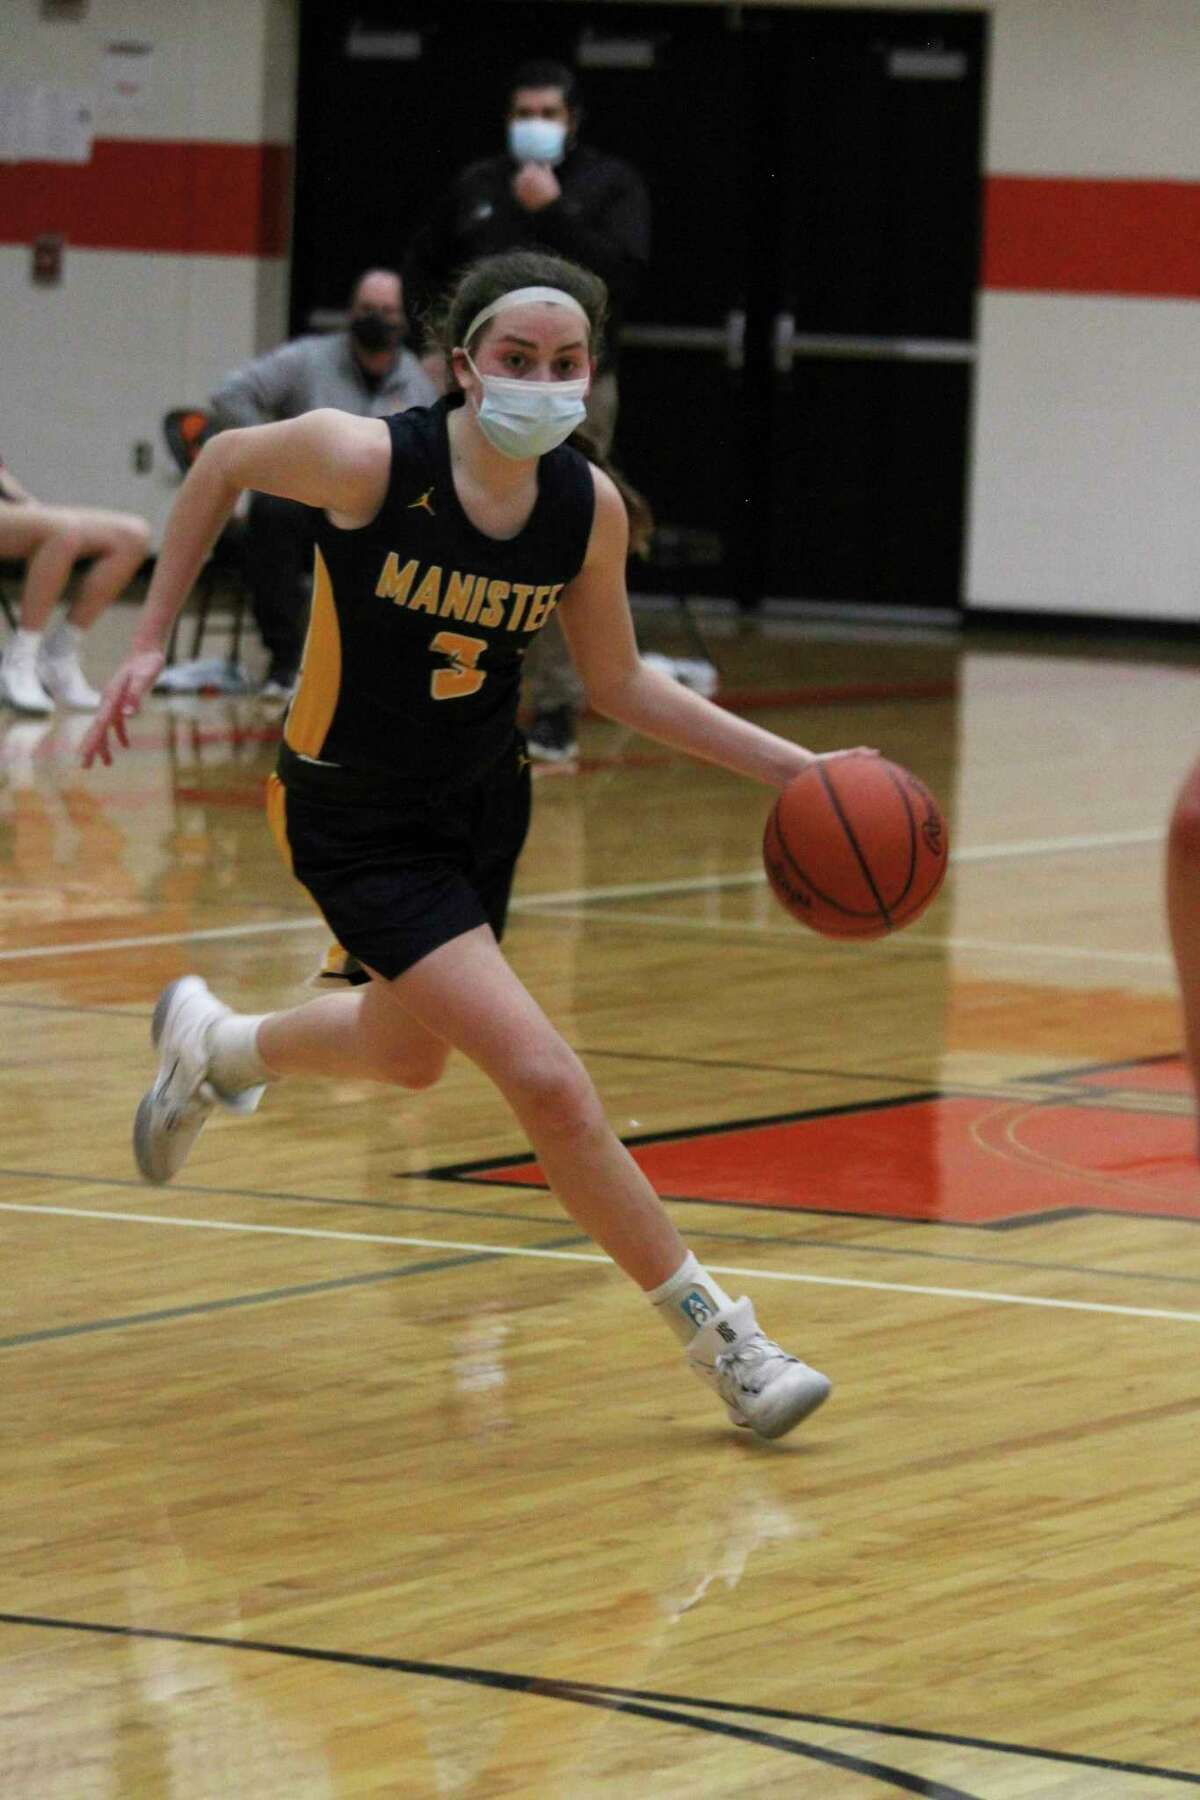 Manistee freshman Libby McCarthy was named an All-State honorable mention in Division 2 girls basketball by the Detroit Free Press. (News Advocate file photo)